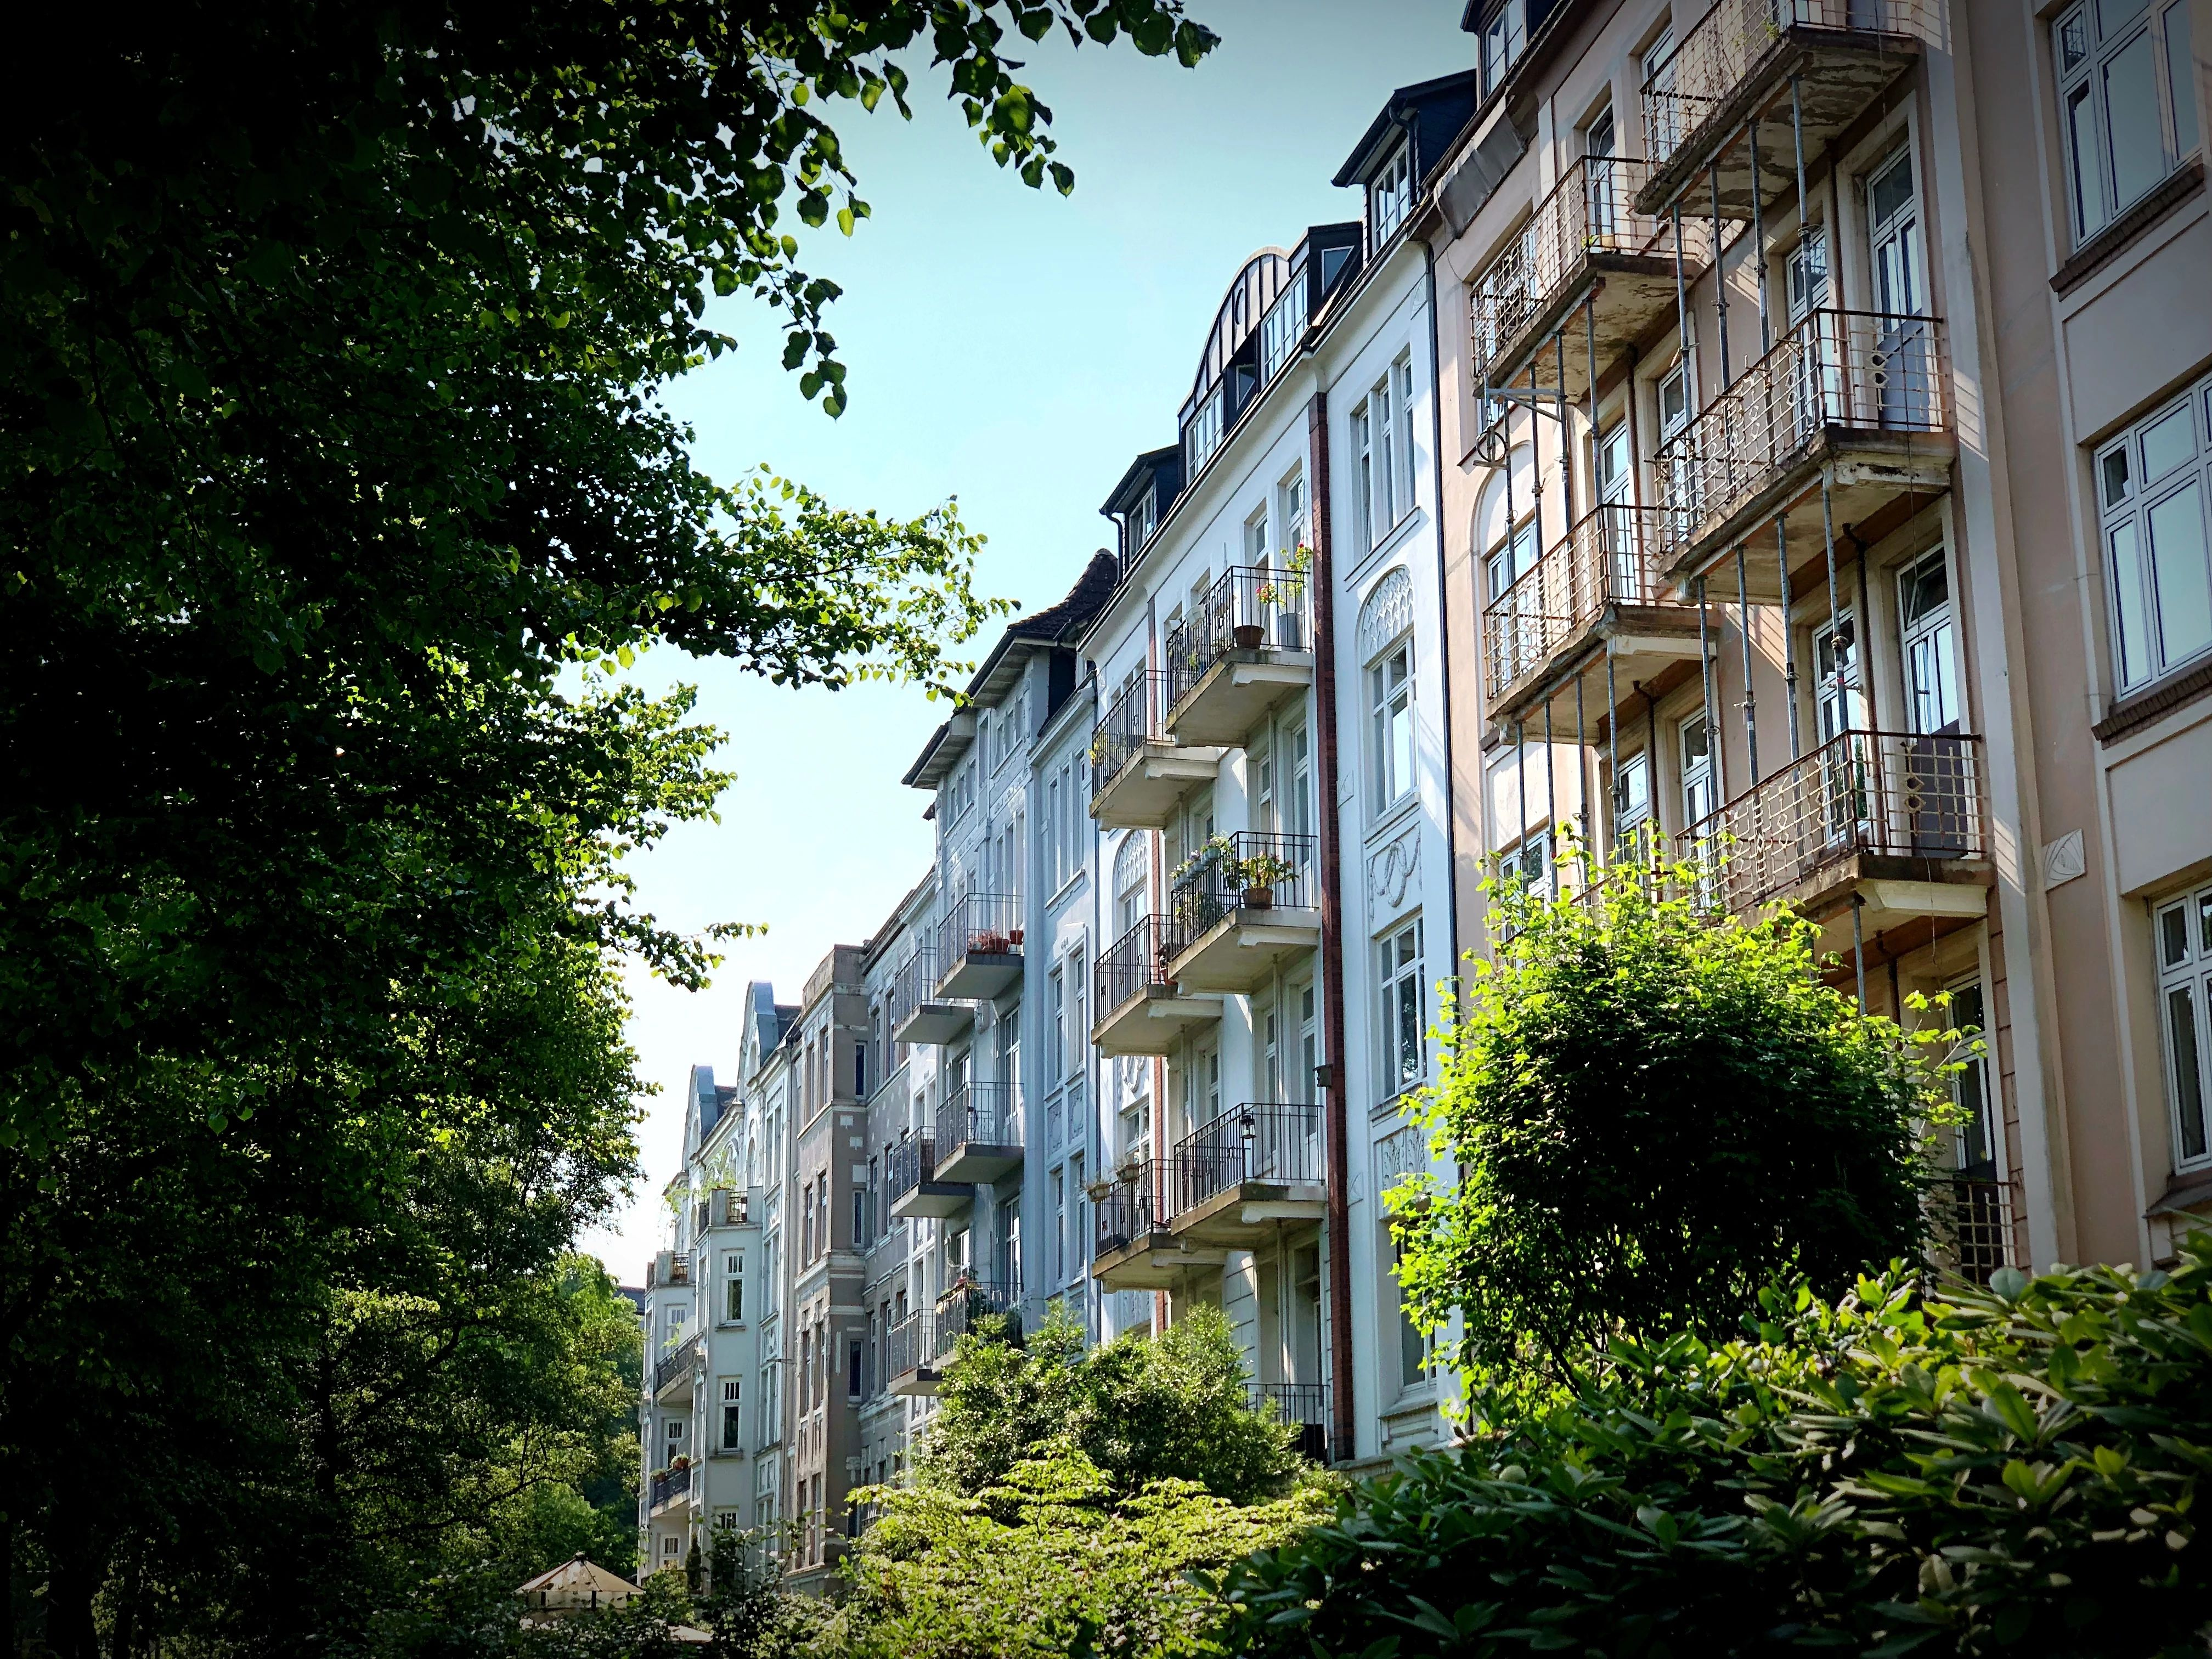 Rent payments decreased slightly in early October compared to the past two years, according to the National Multifamily Housing Council?s latest survey. (Getty Images)